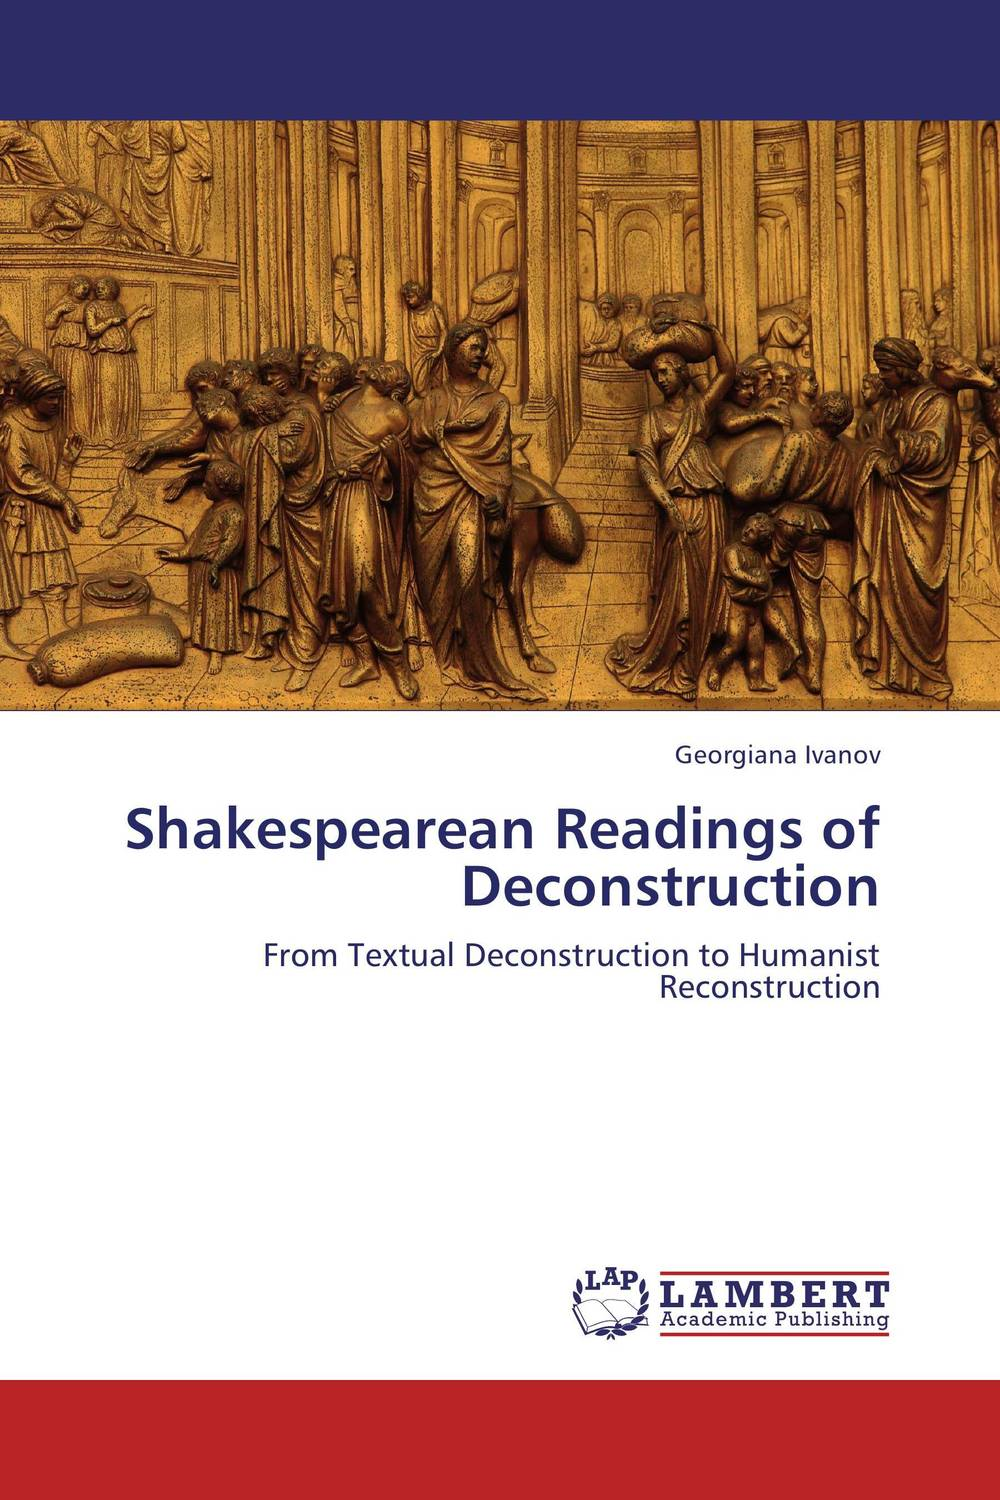 Shakespearean Readings of Deconstruction